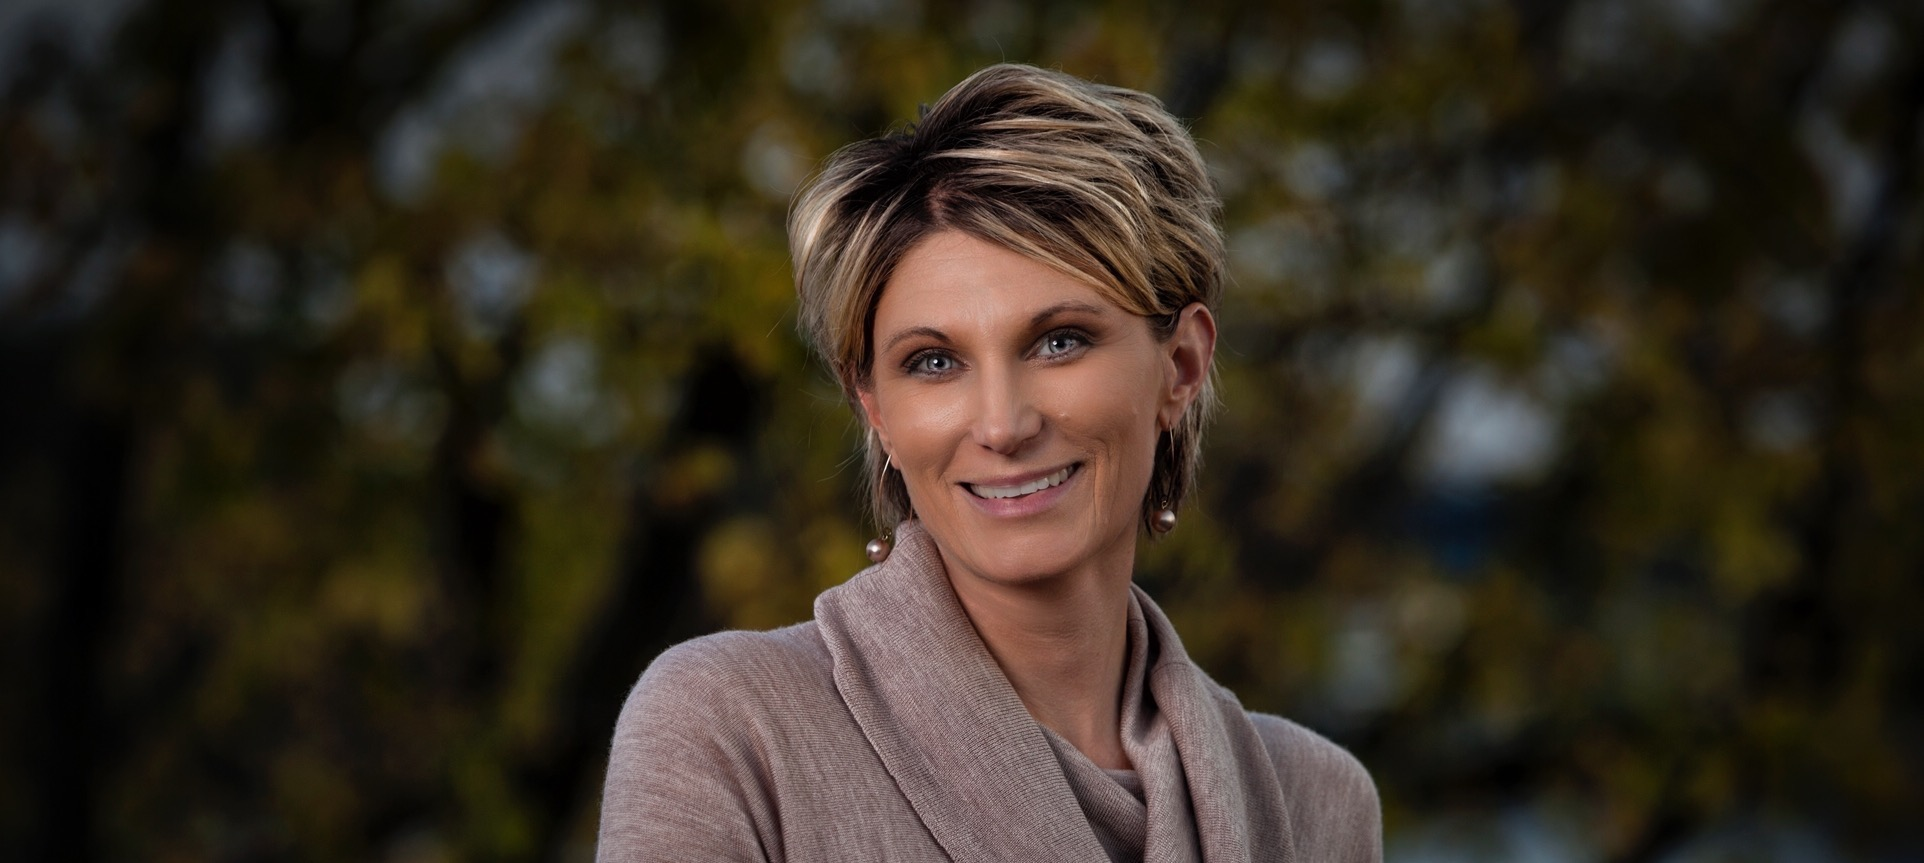 Cyndy Montana resigns as secretary to the supervisor to run for a seat on the town council